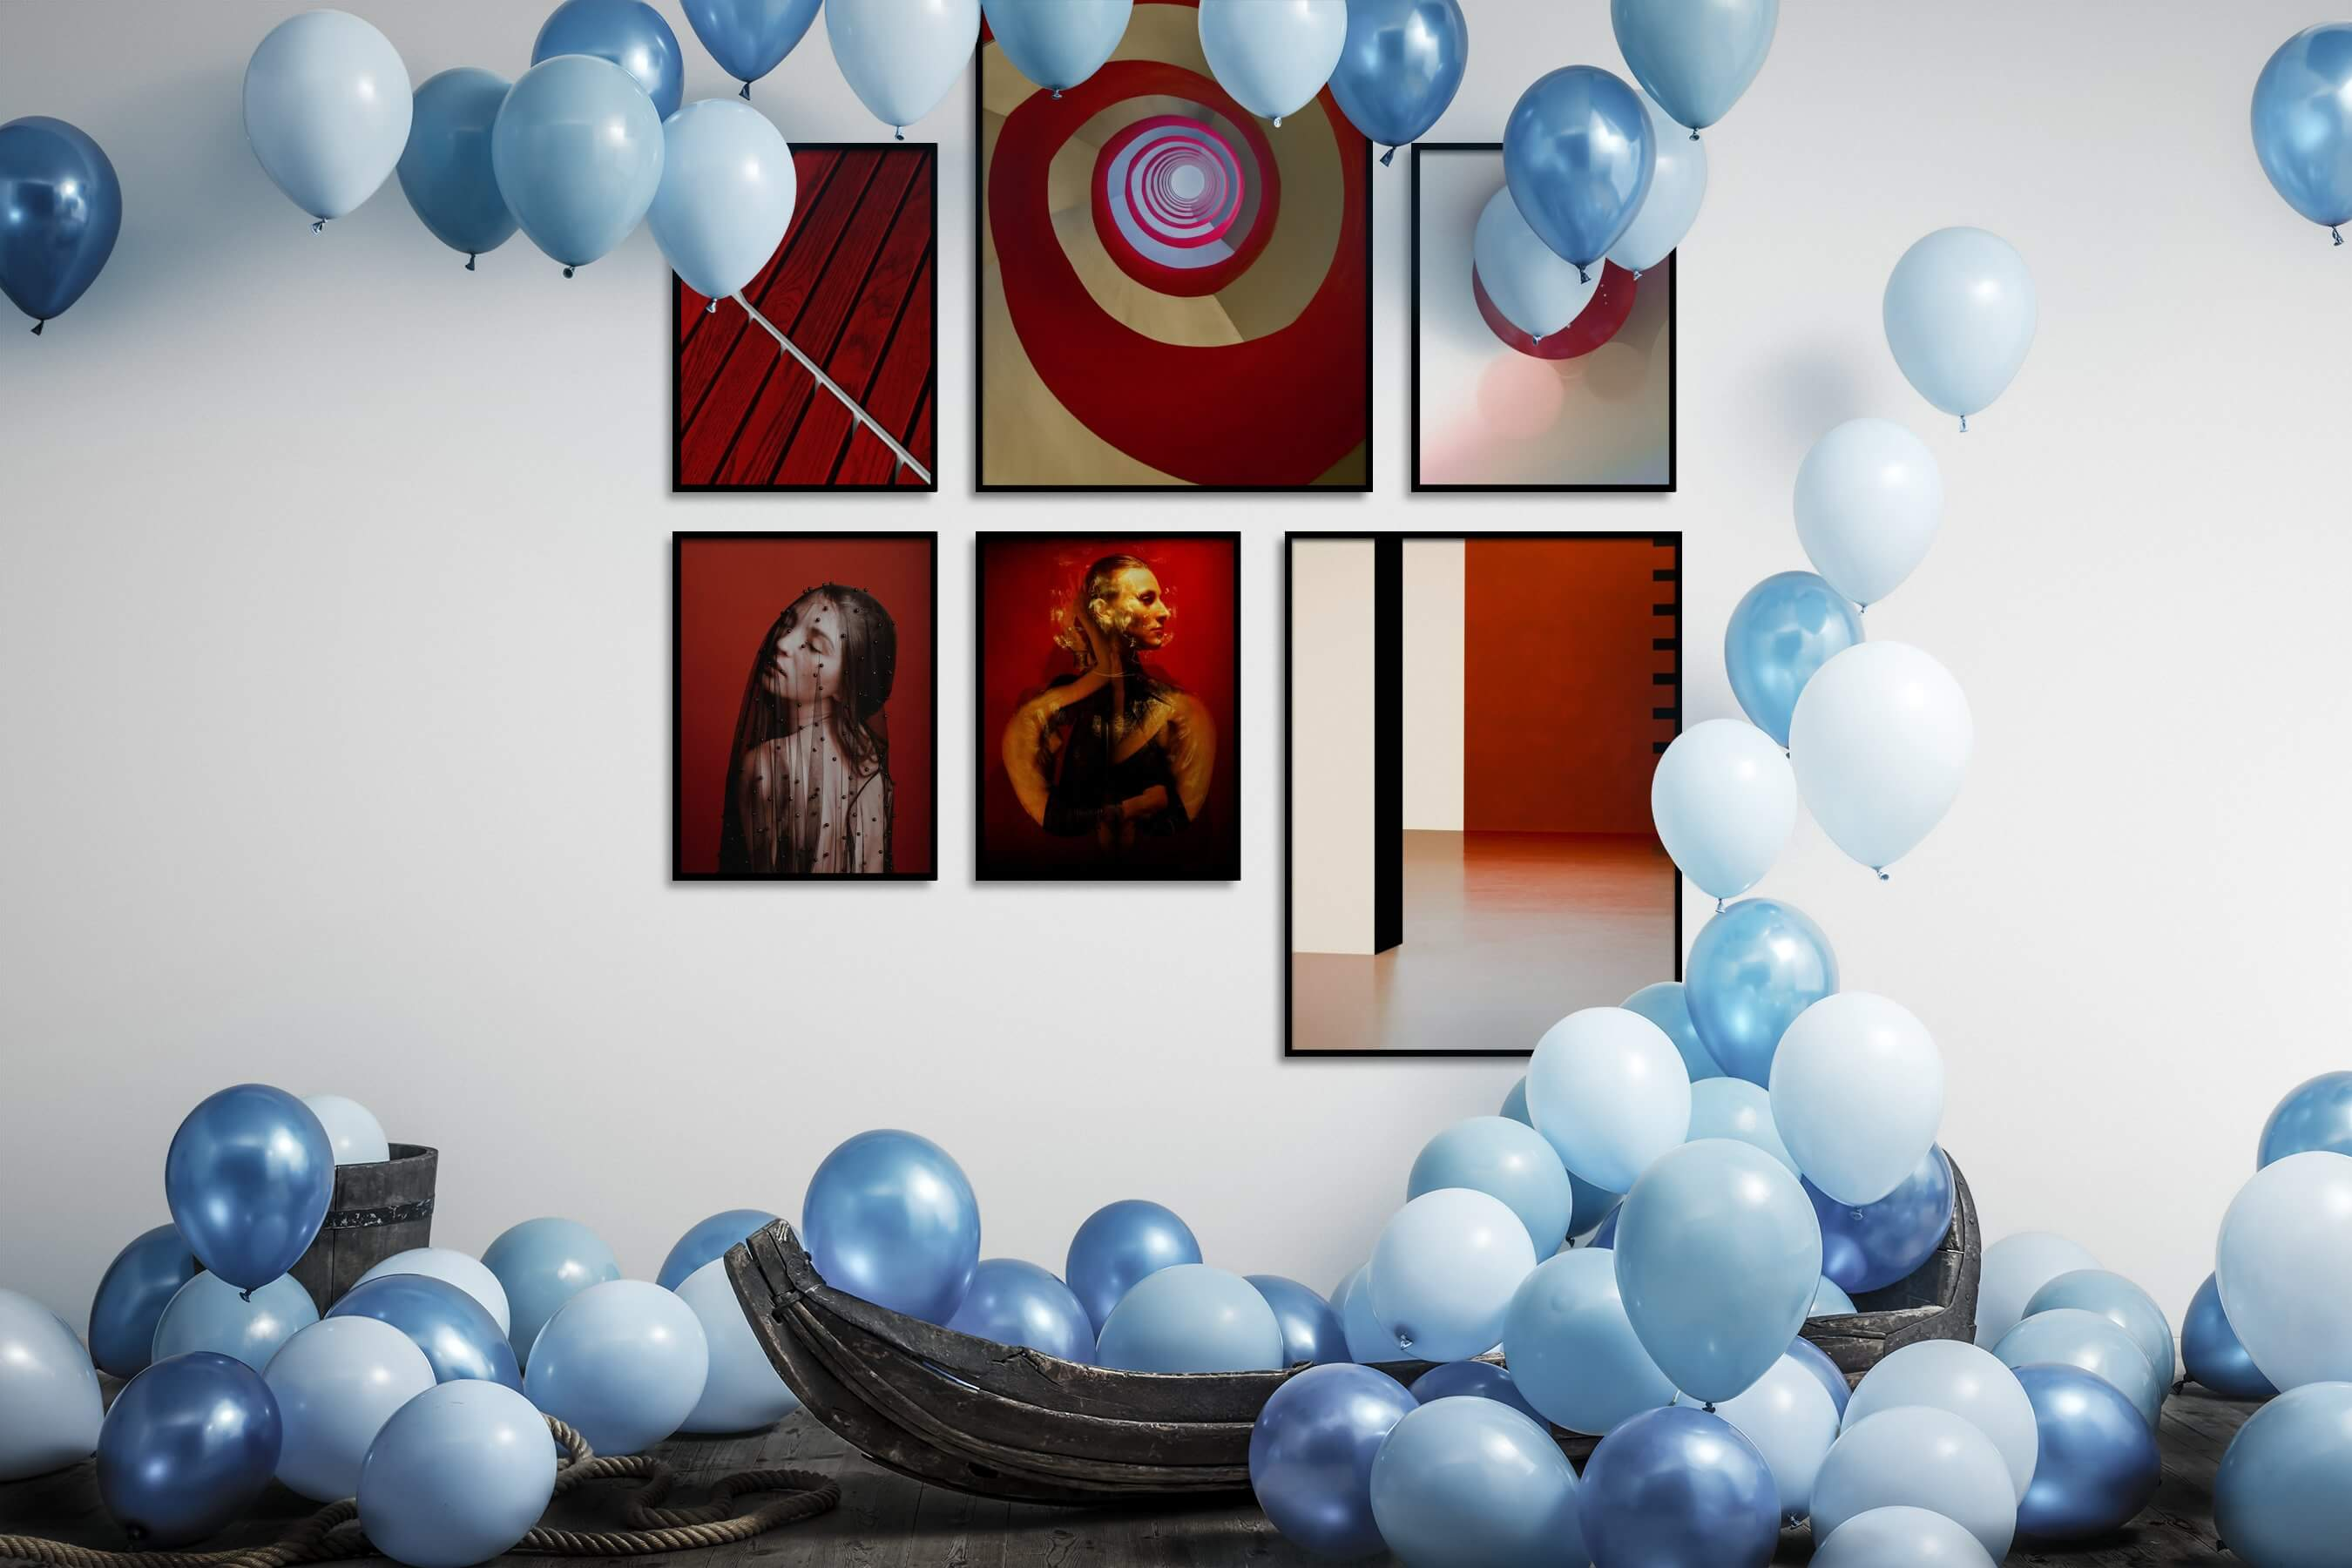 Gallery wall idea with six framed pictures arranged on a wall depicting For the Moderate, Fashion & Beauty, and Artsy